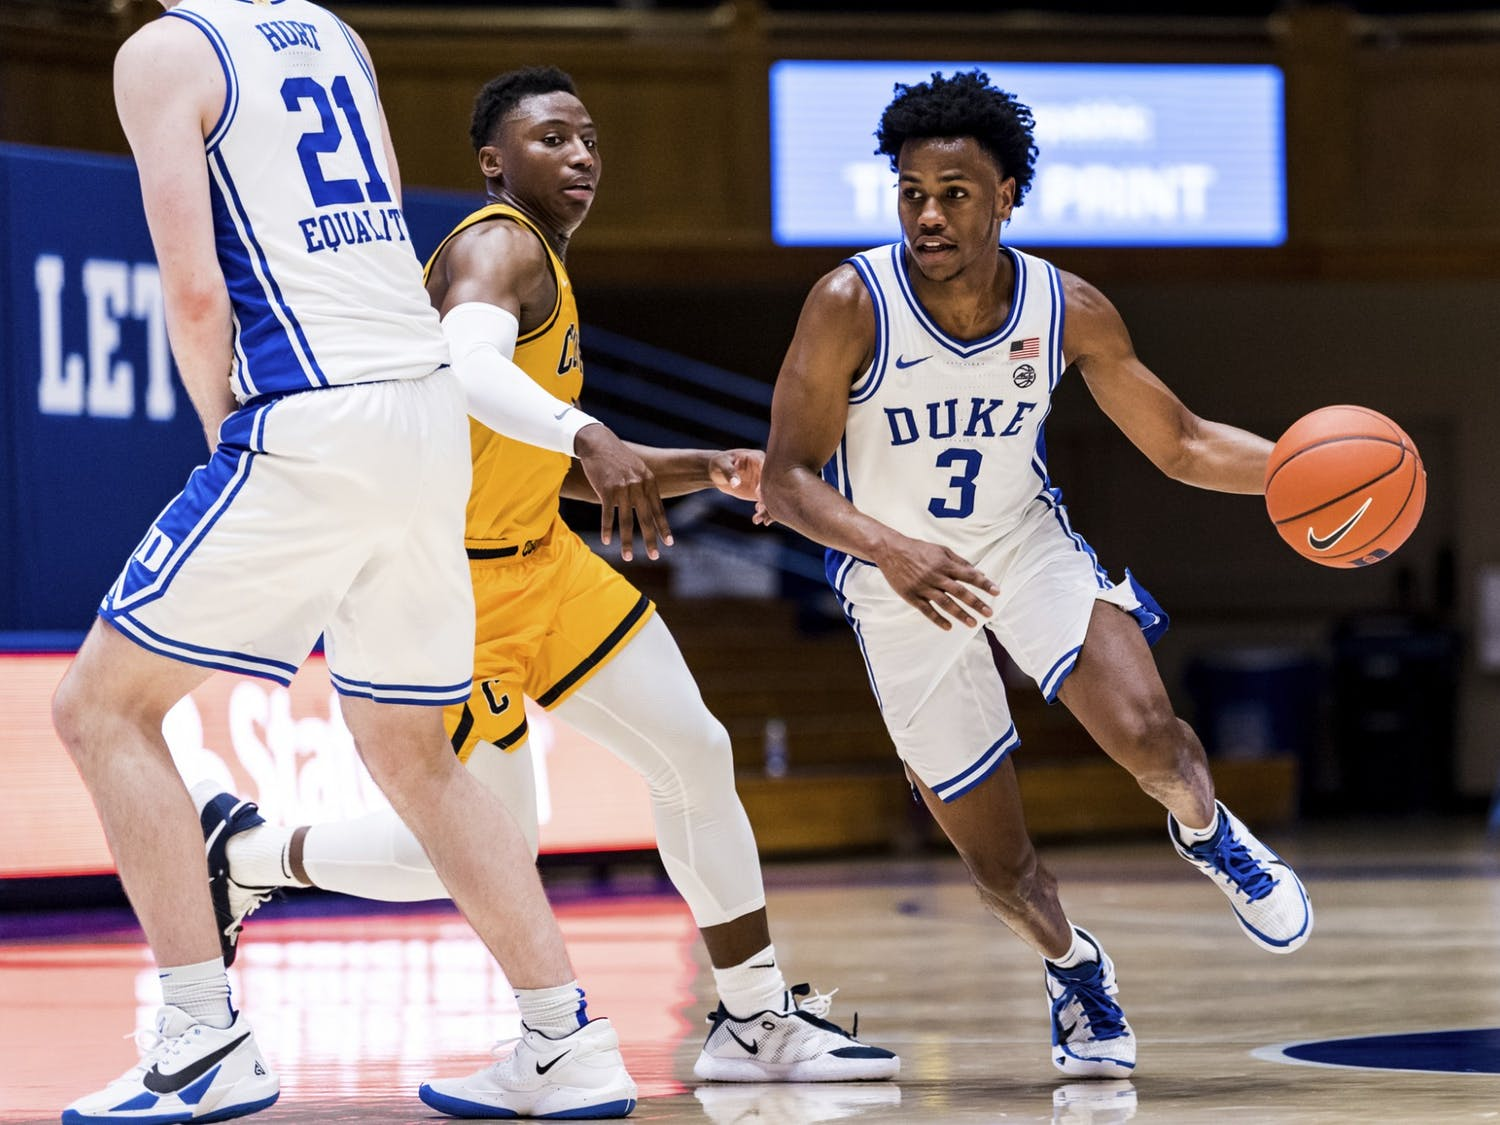 For newcomers such as Jeremy Roach, Tuesday night's matchup with No. 8 Michigan State will be their first taste of the national spotlight.